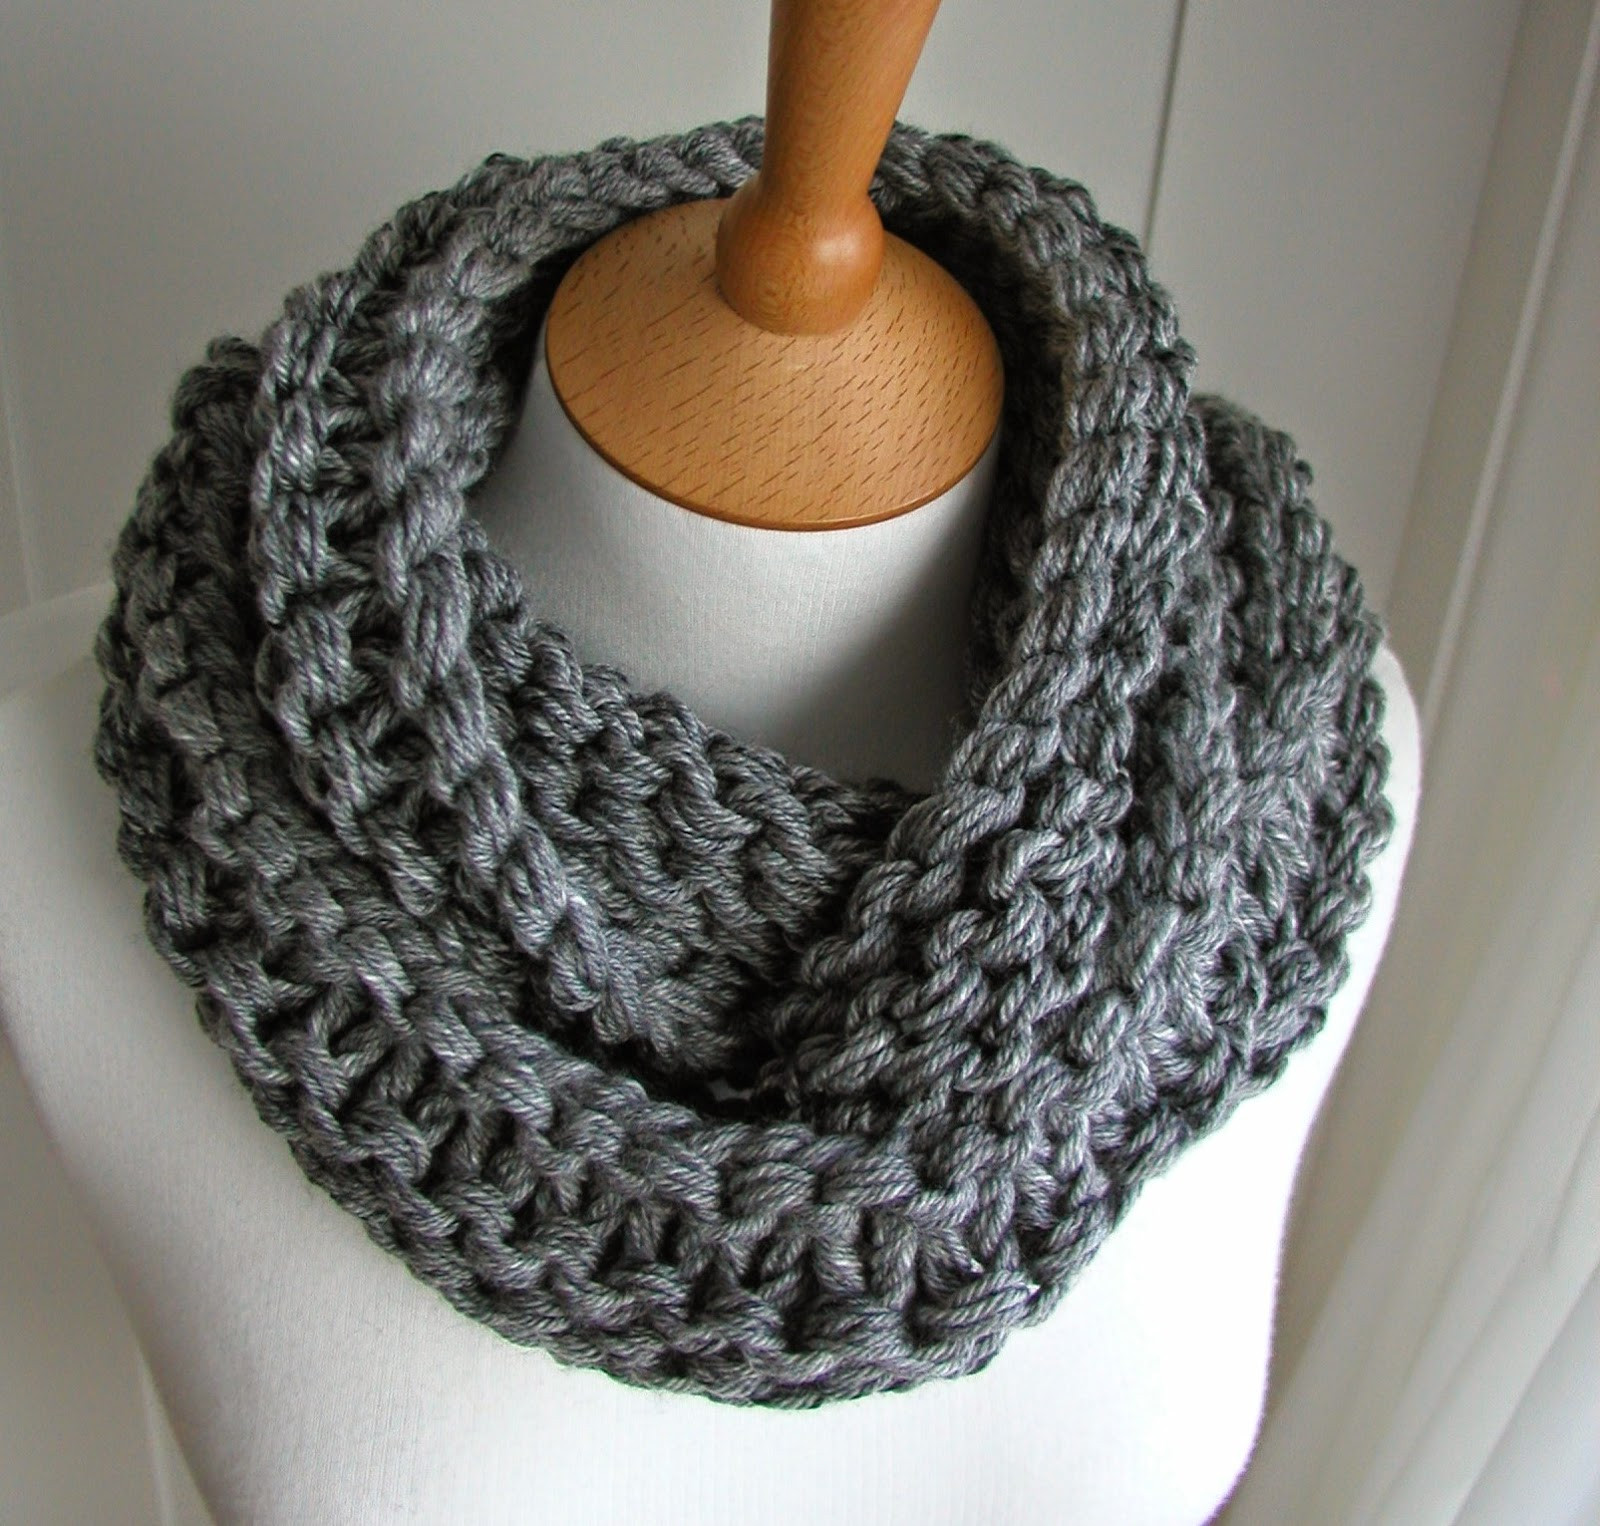 New Hand Knitted Things Circular Scarf Free Pattern Knit Circle Scarf Of Brilliant 47 Photos Knit Circle Scarf